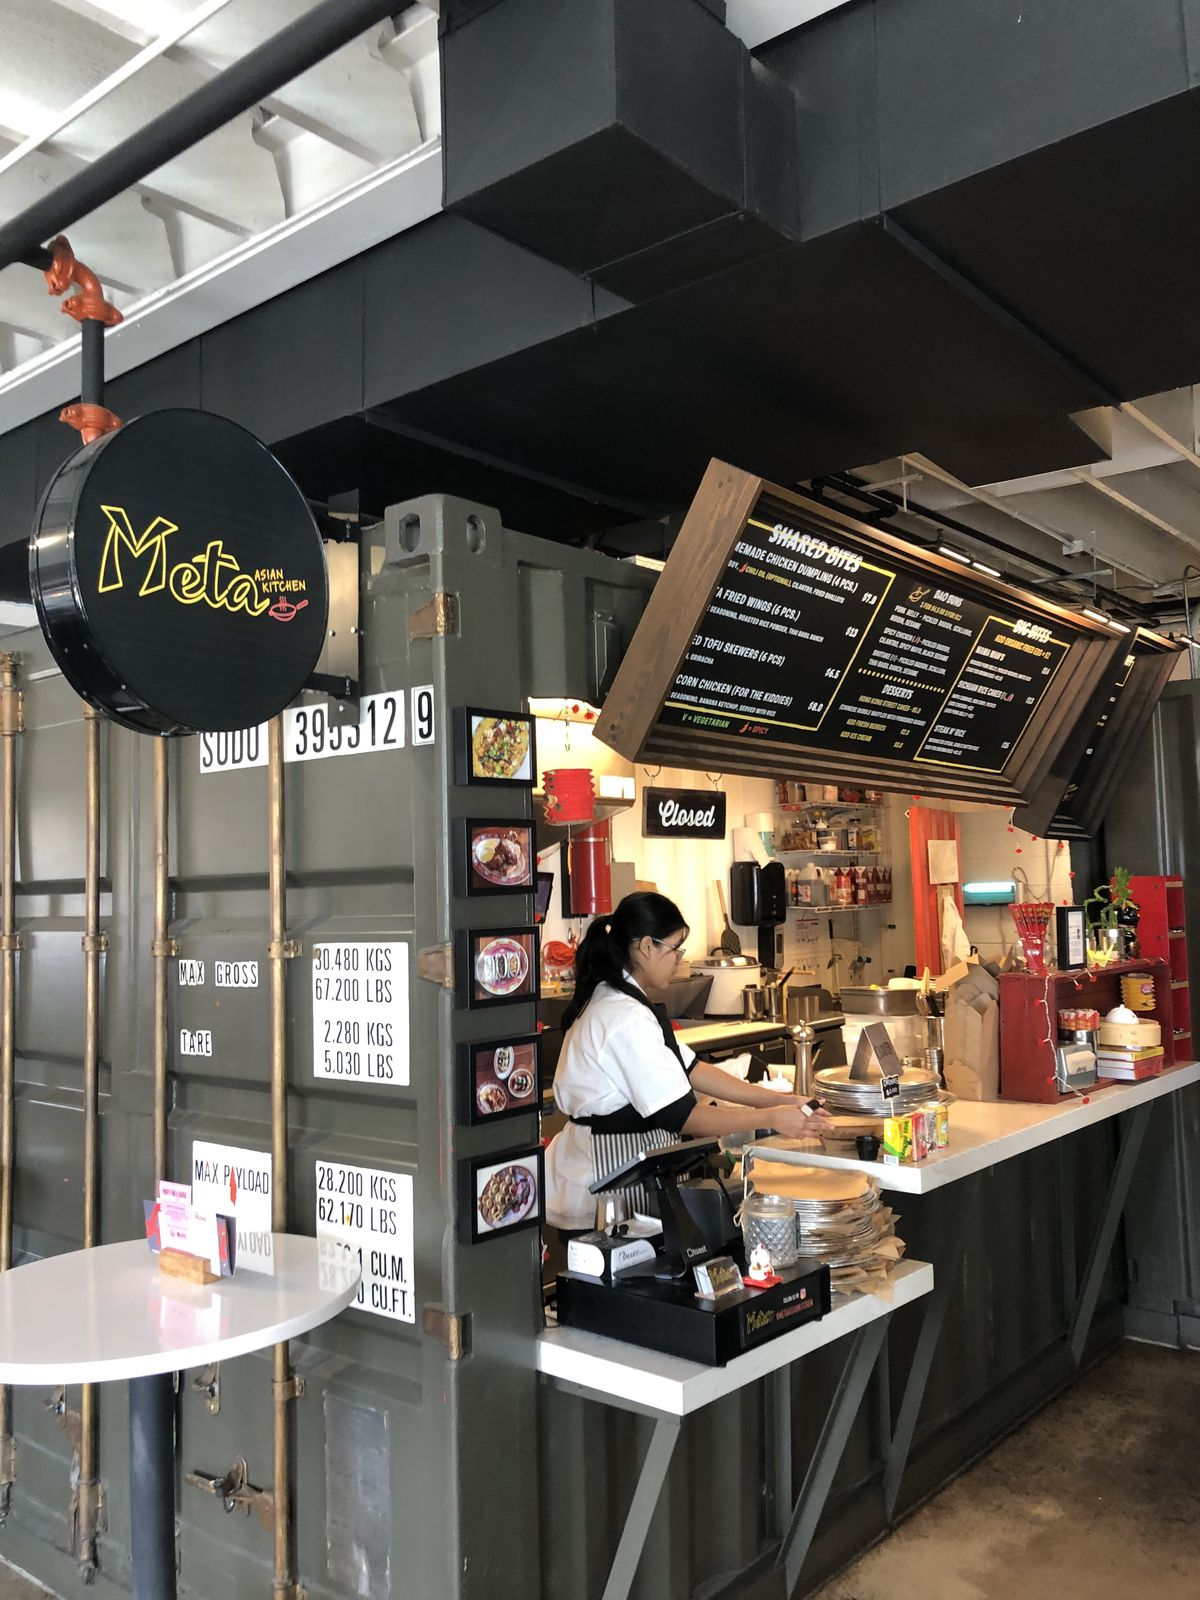 A photo of Meta Asian Kitchen, which is set in a metal shipping container at Avanti Food & Beverage, with a round sign and the menu visible